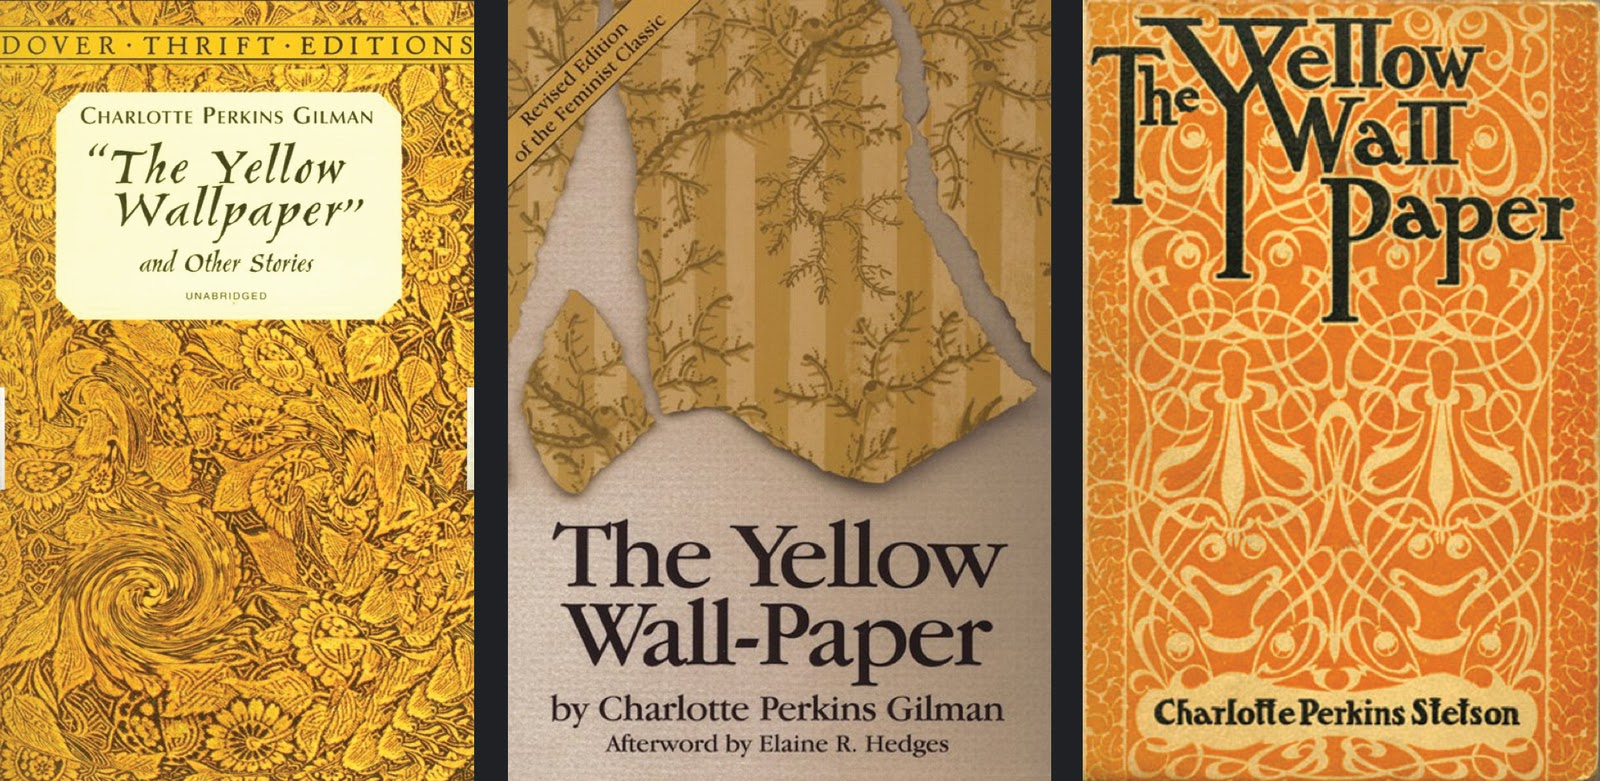 charlotte perkins gilman the yellow wallpaper essays Charlotte perkins gilman's literary work 'the yellow wallpaper' is often considered as an important early work of american feminist literature which illustrates.